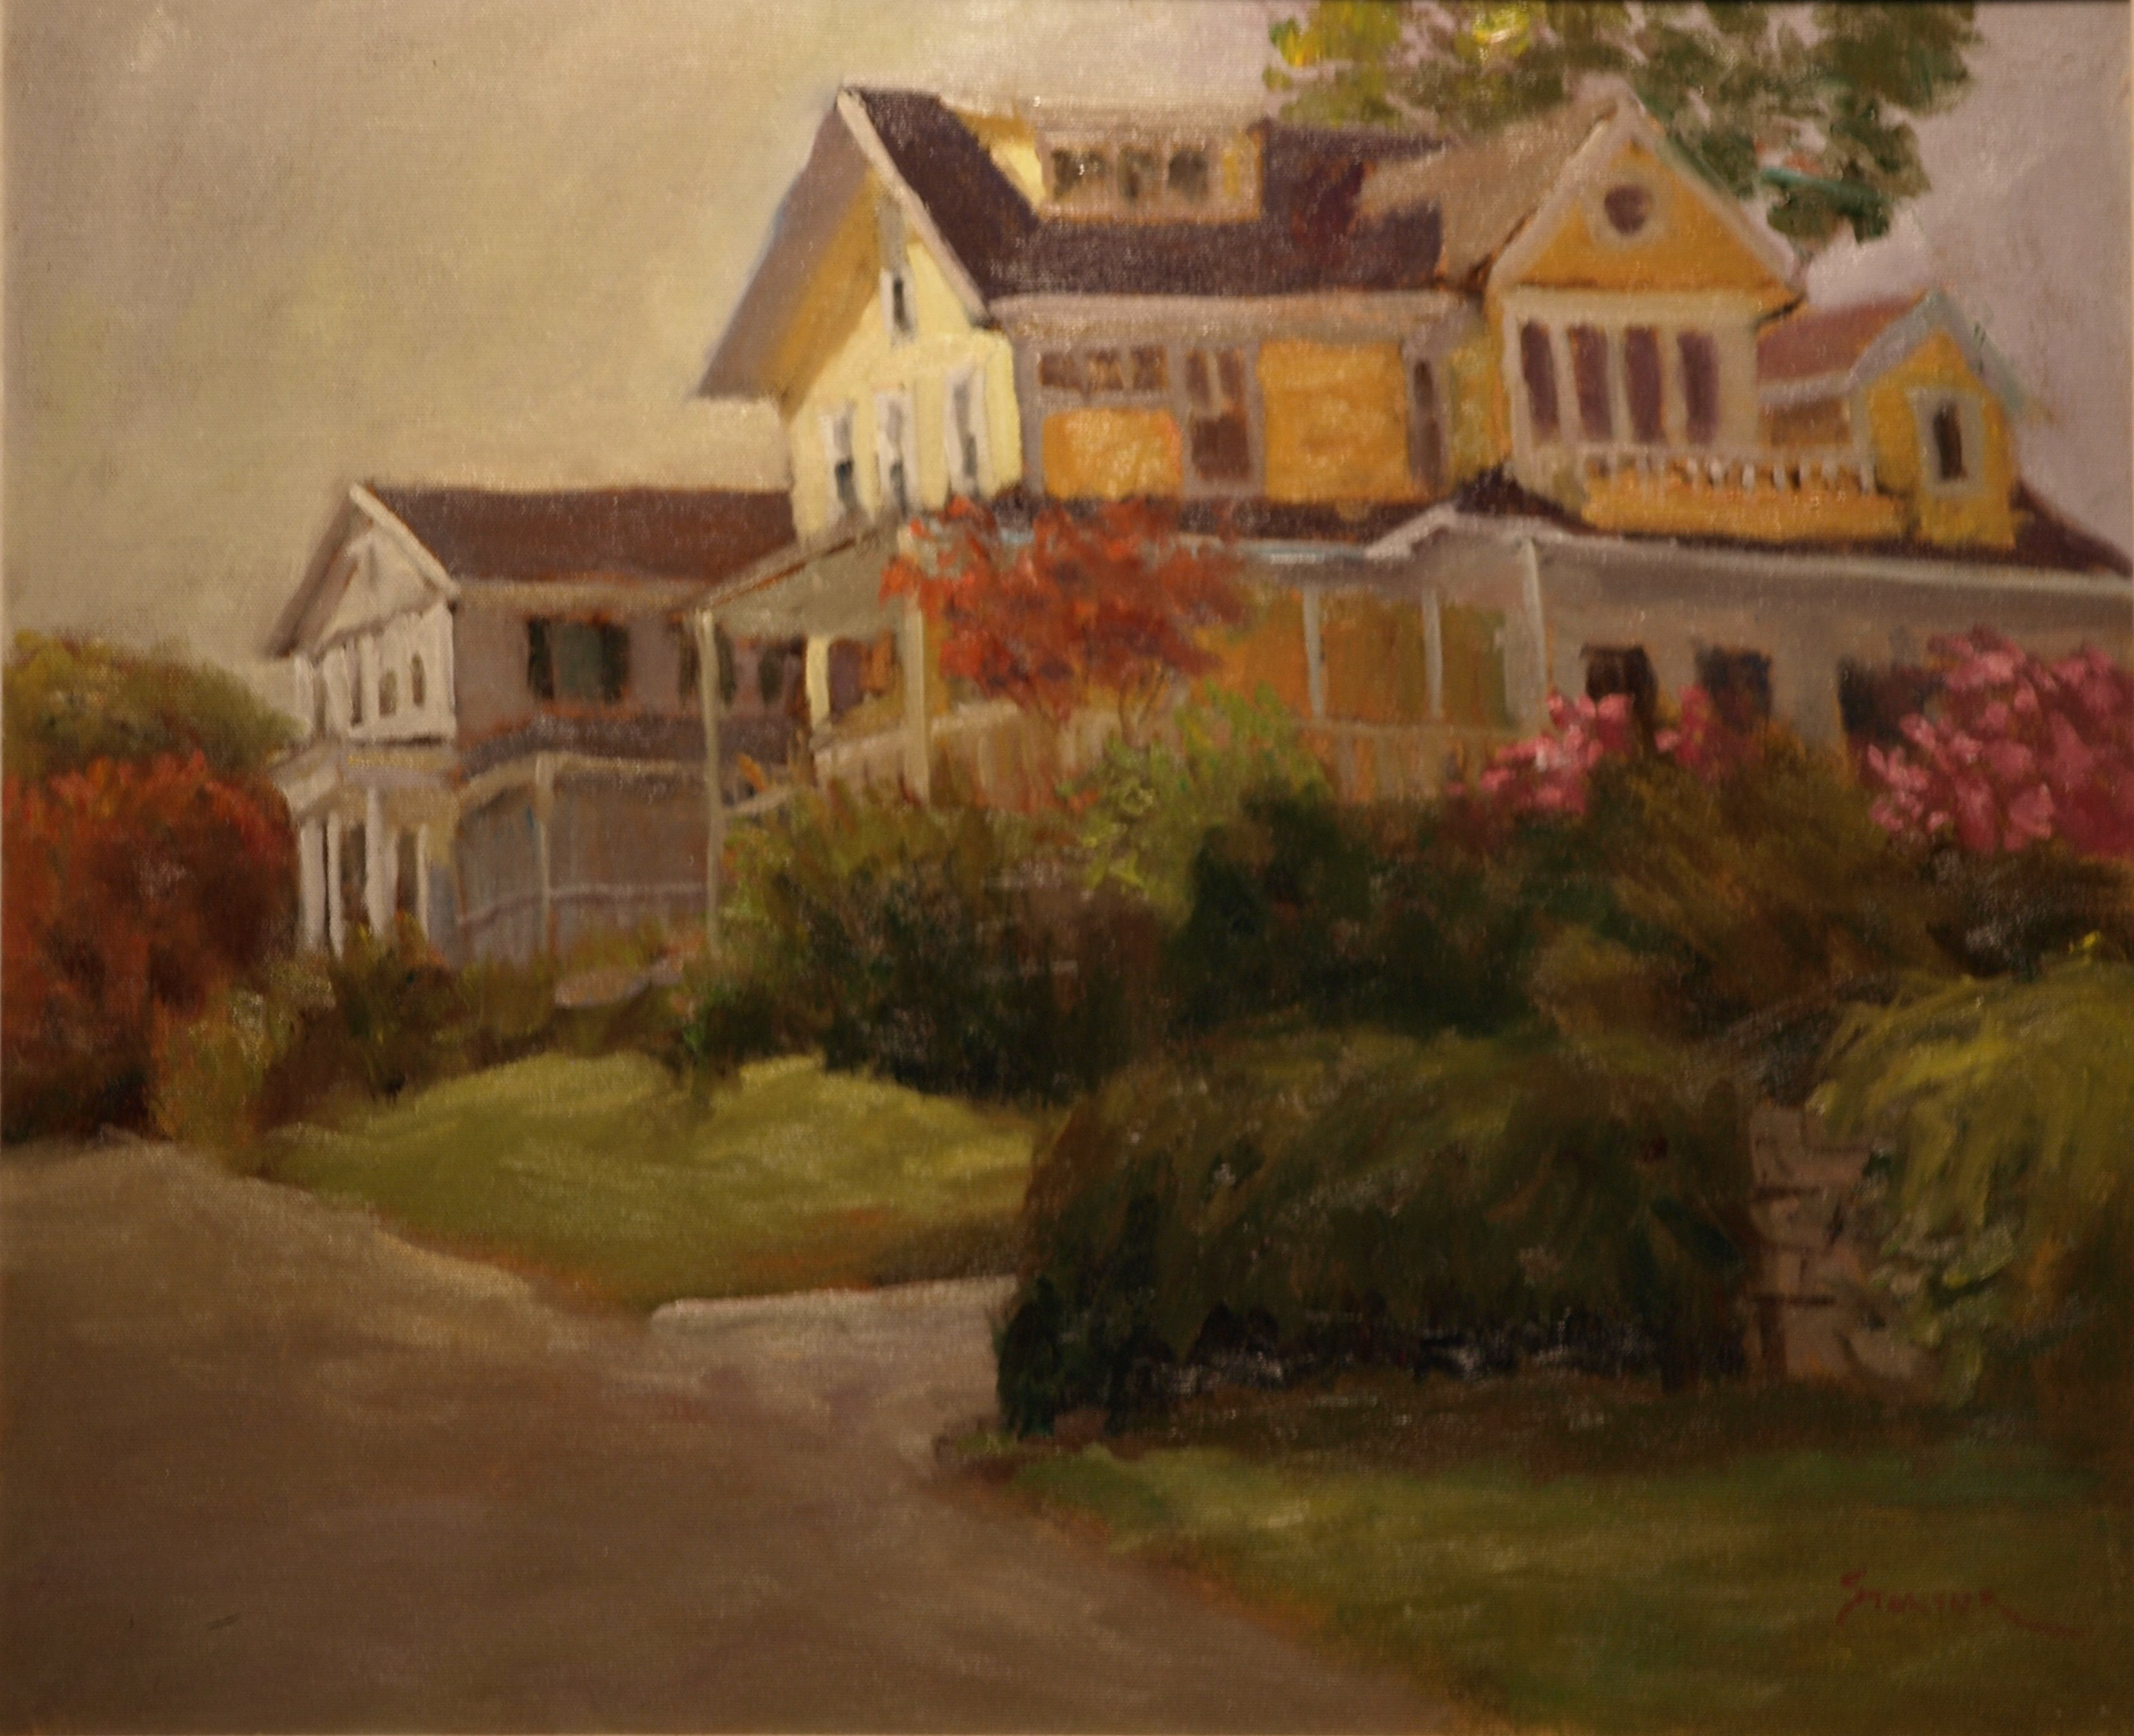 Yellow House - Noank, Oil on Canvas, 20 x 24 Inches, by Richard Stalter, $850